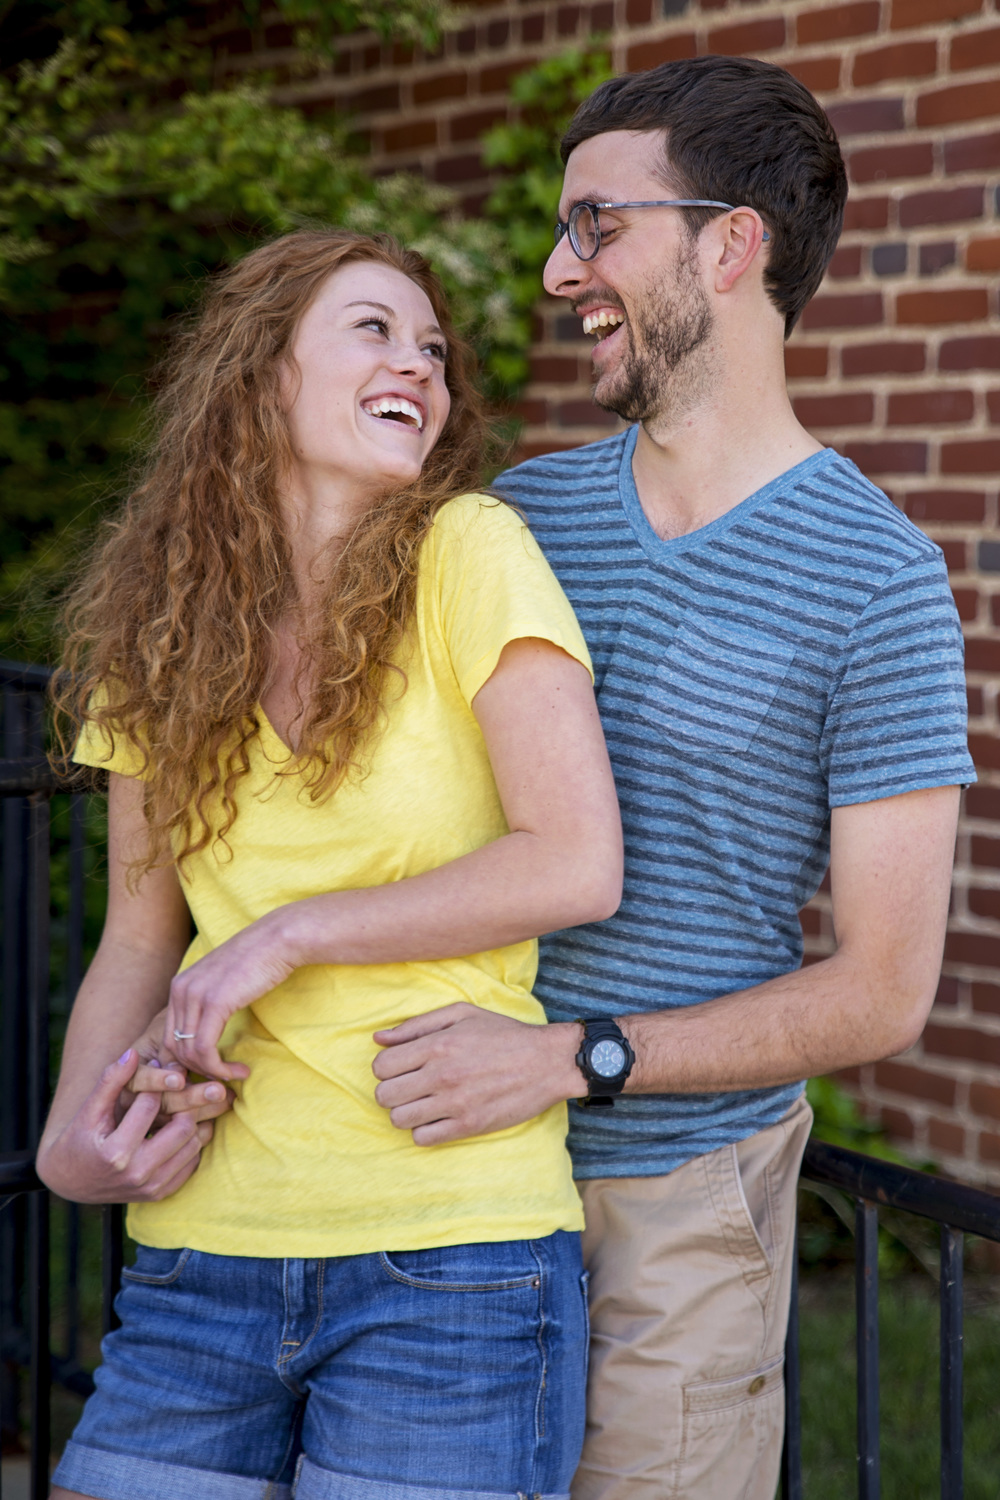 altavista_ginger_redhead_field_lake_engagement_session_small_town_lynchburg_va025.jpg